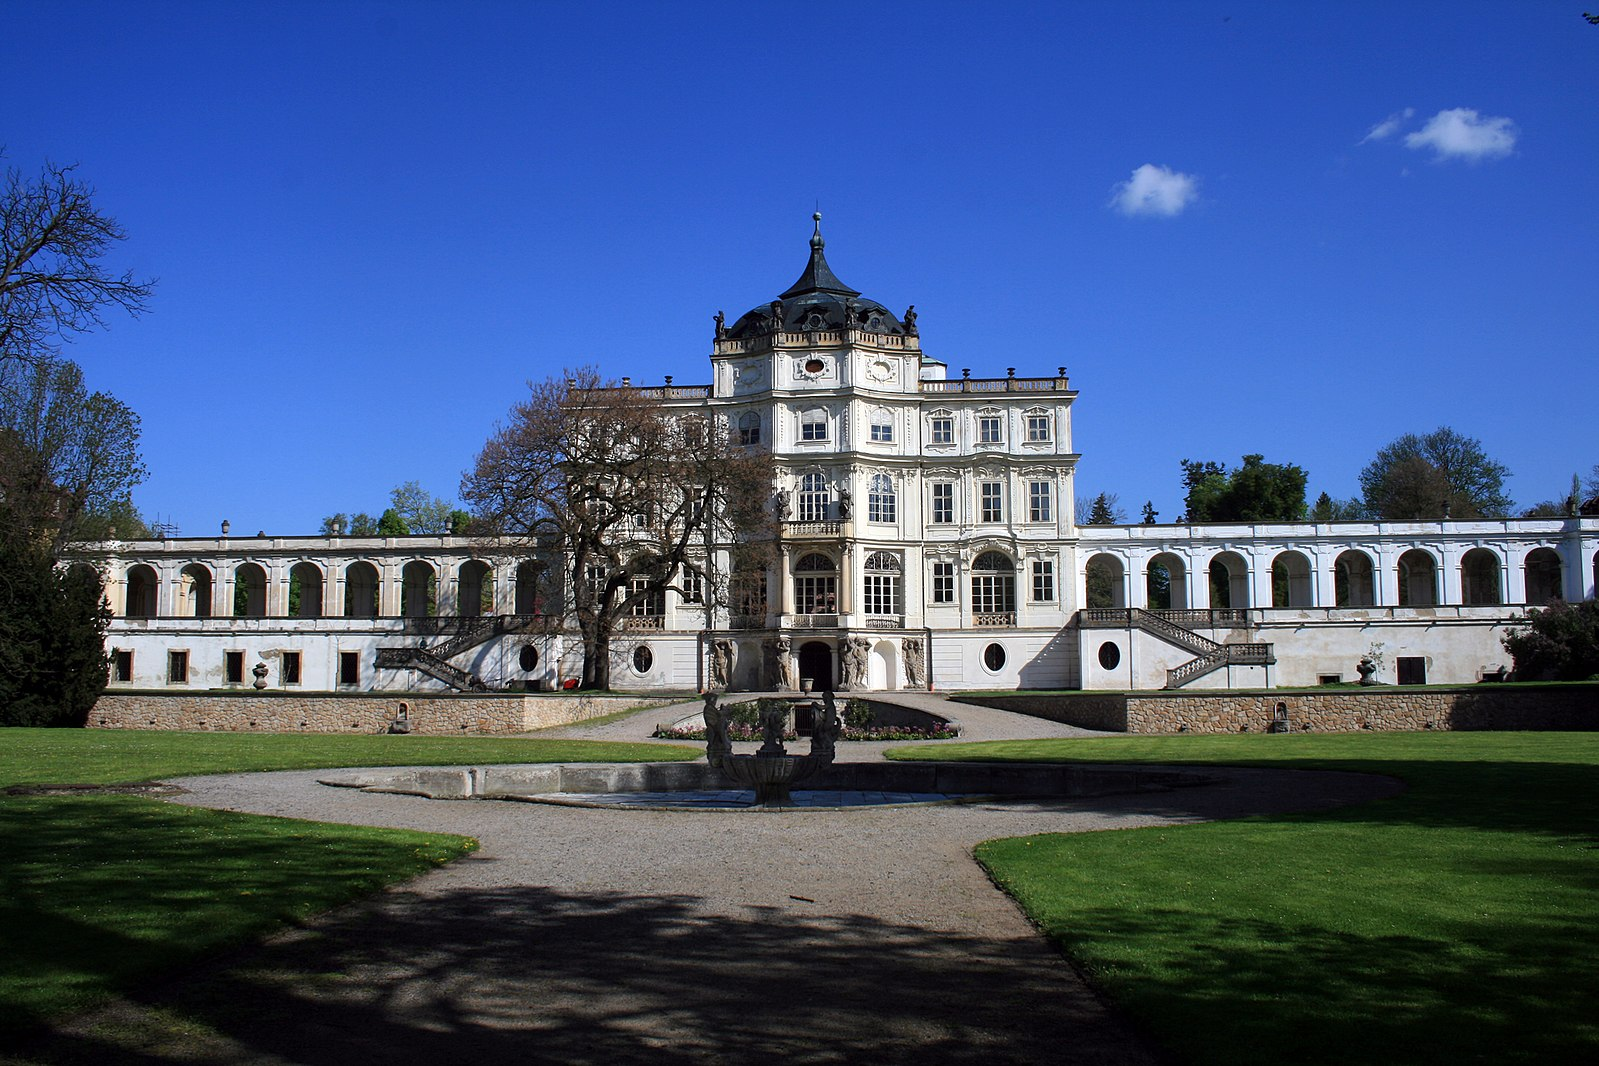 The palace of Ploskovice